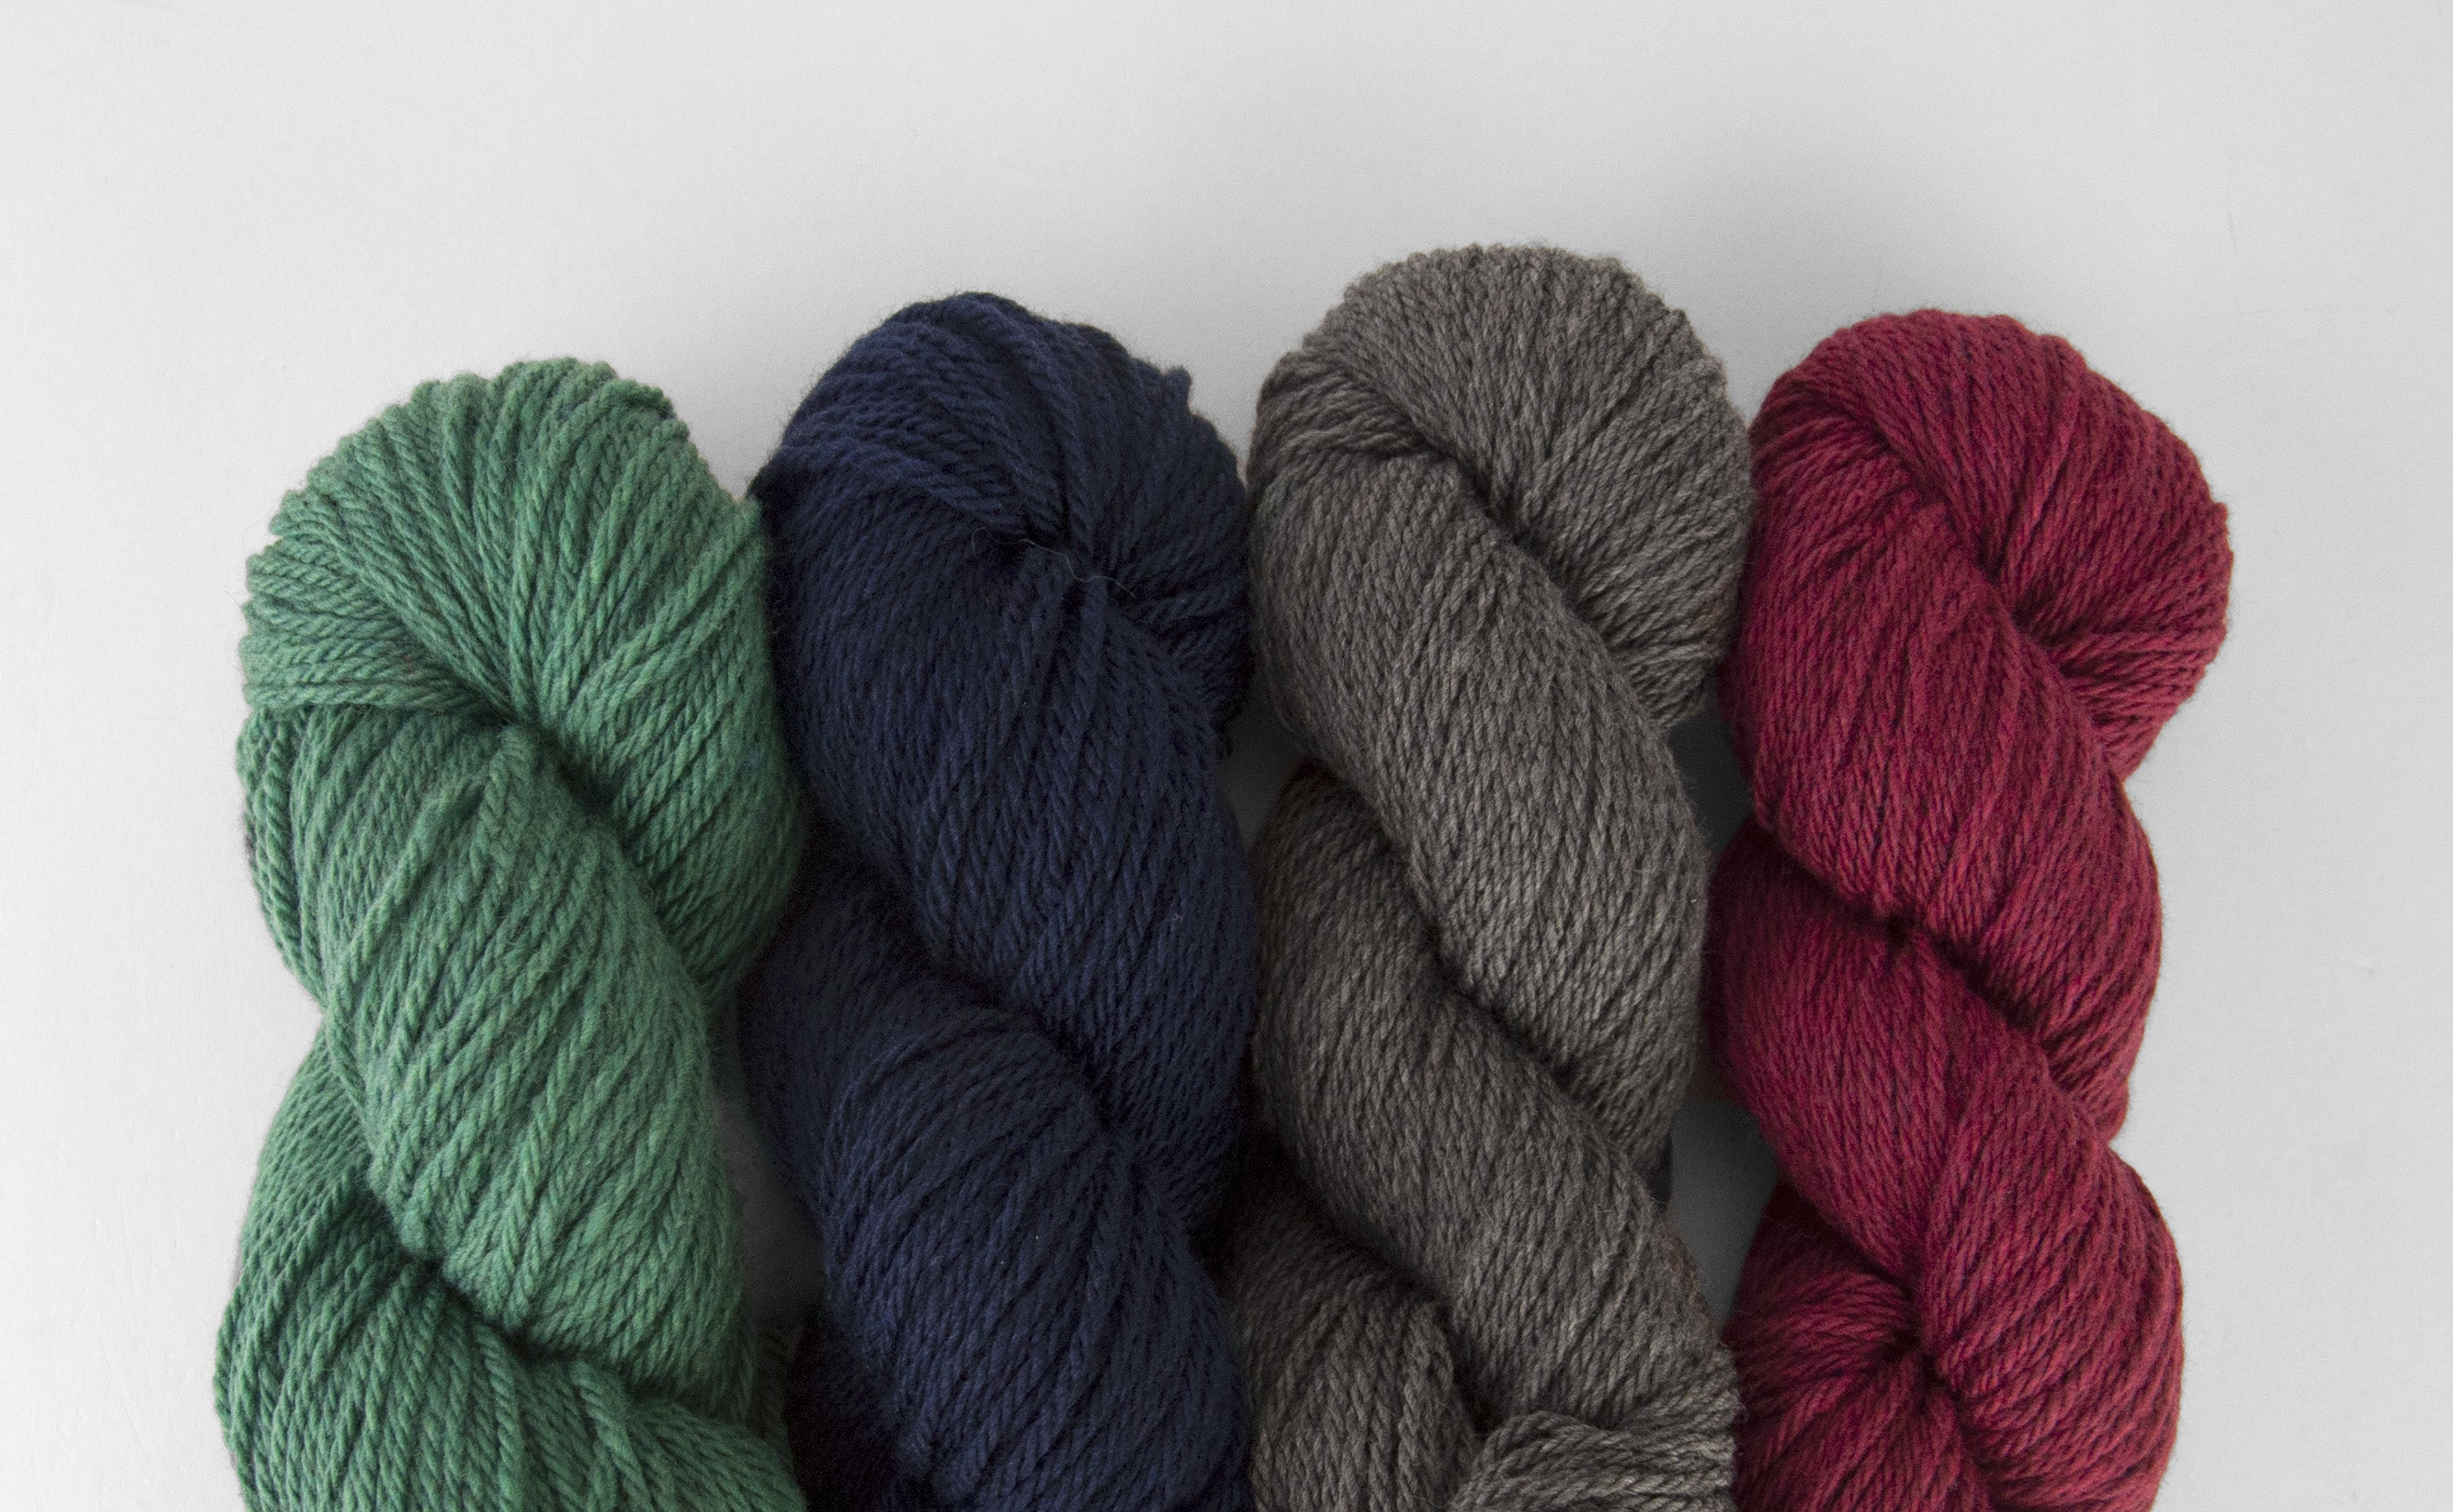 North Light Fibers Atlantic Yarn – Knit Purl